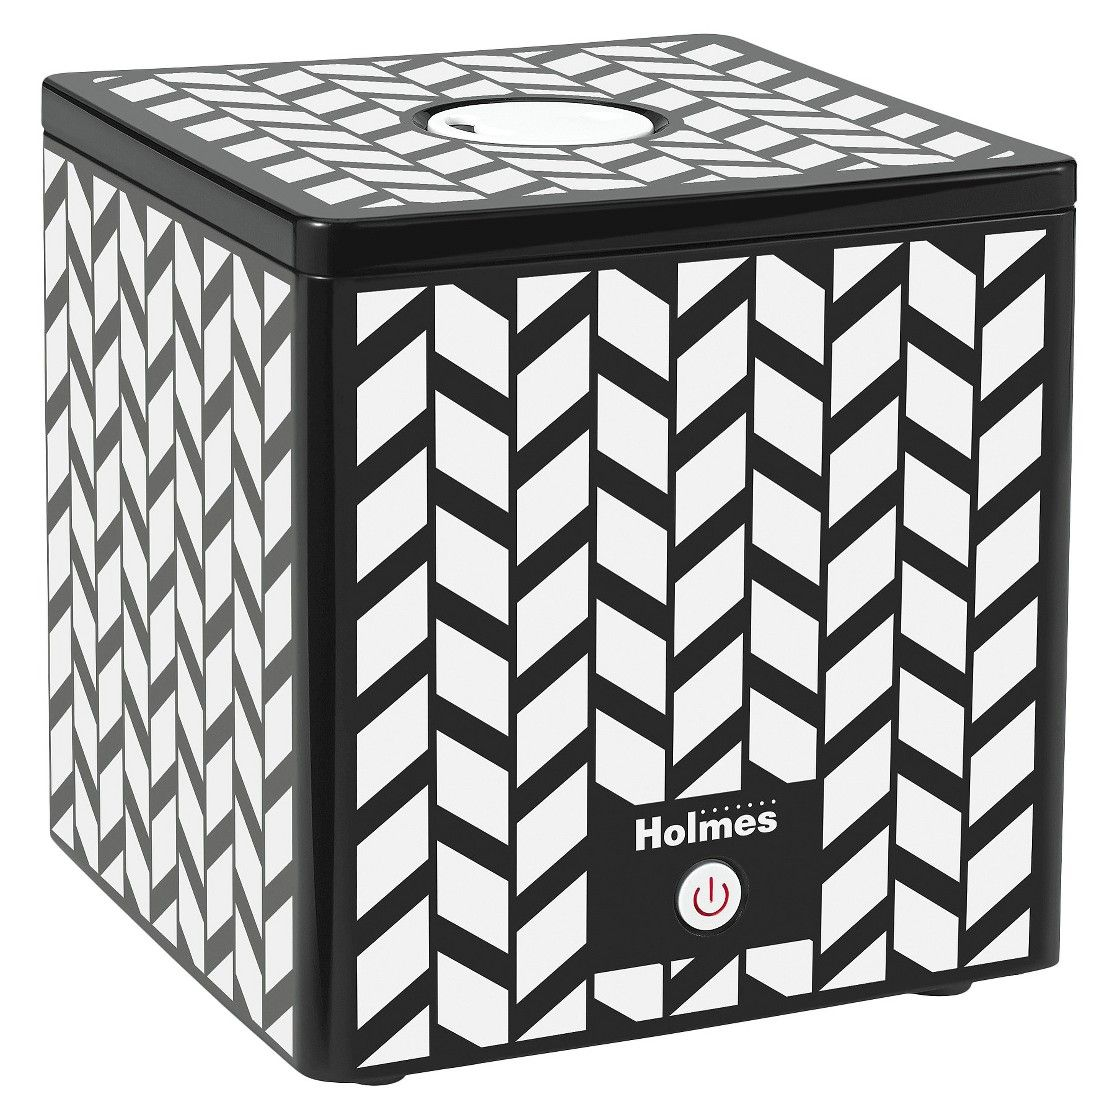 Holmes Ultrasonic Cube Humidifier Blk/Wht Design Pink